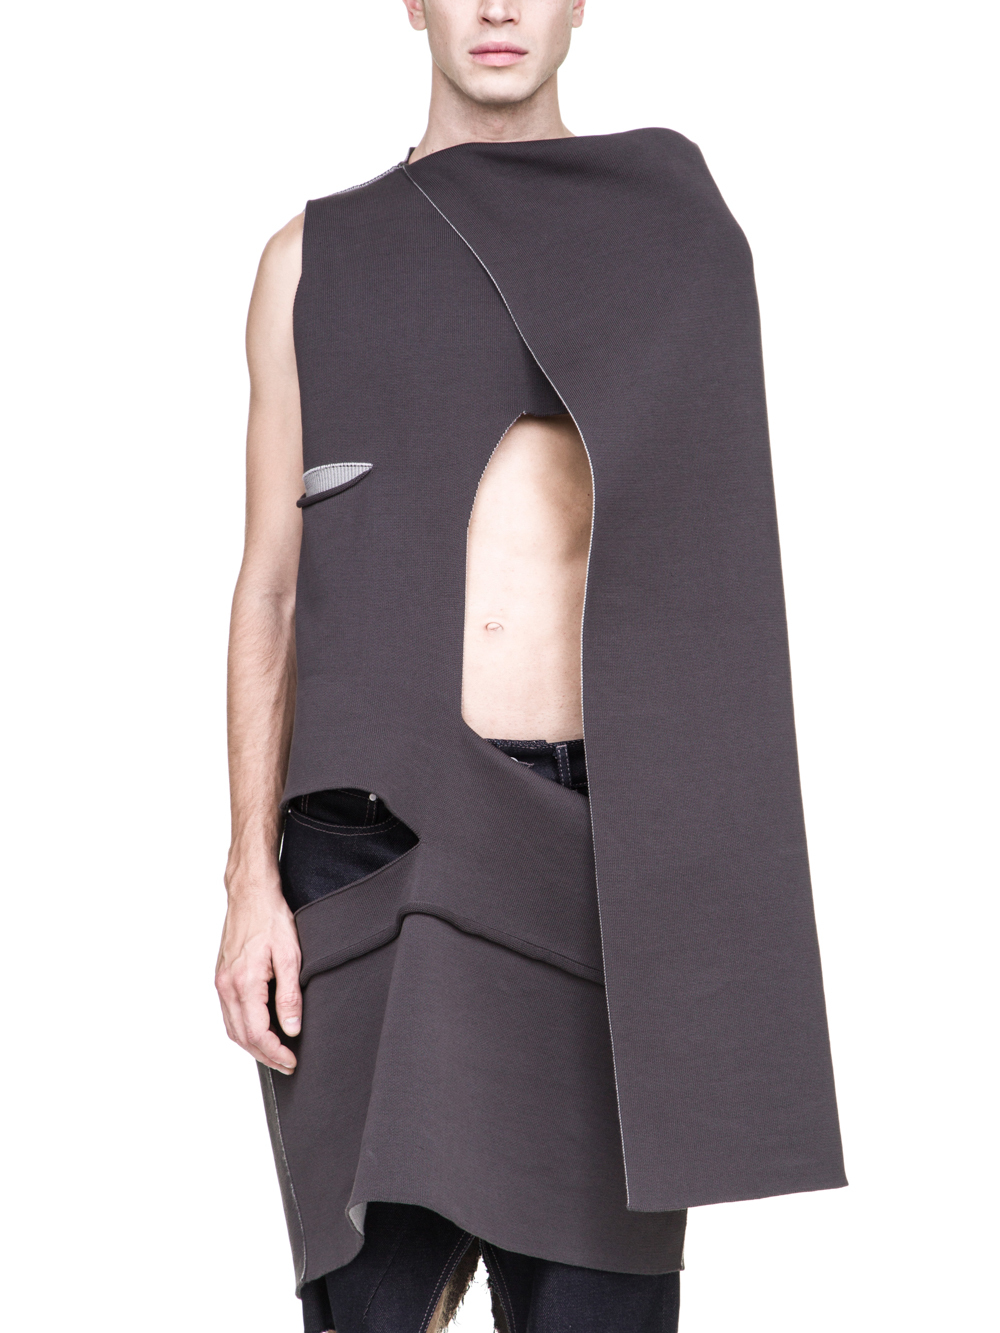 RICK OWENS OFF-THE-RUNWAY CAPE TOP IN DARKDUST GREY